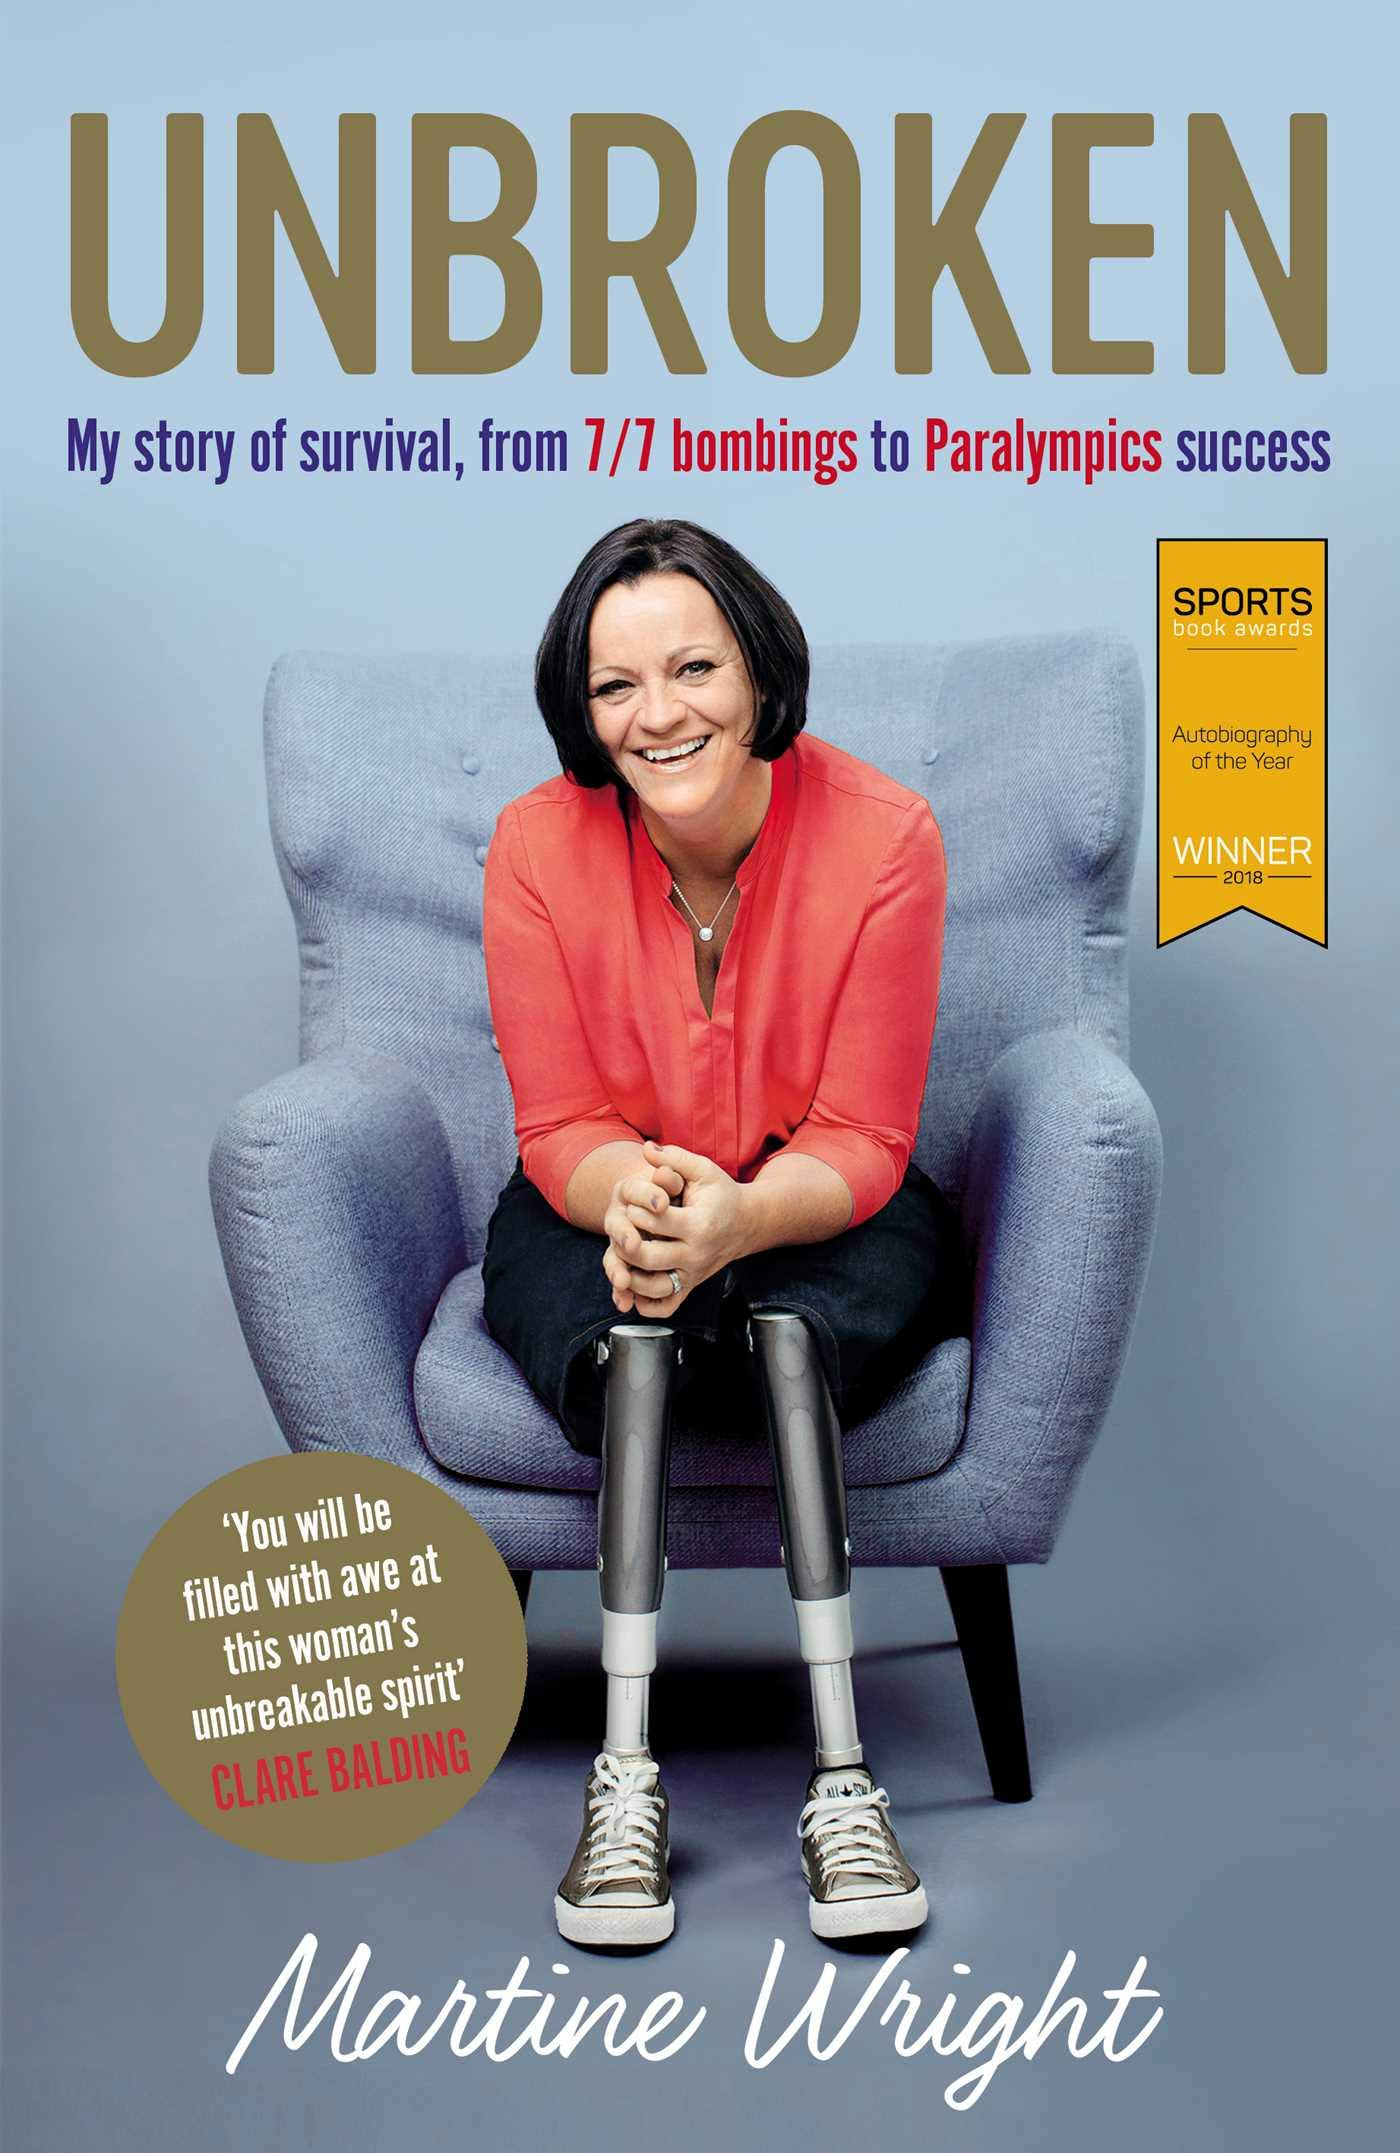 Unbroken: My story of survival from 7/7 Bombings to Paralympic success:  Amazon.co.uk: Martine Wright: 9781471160554: Books